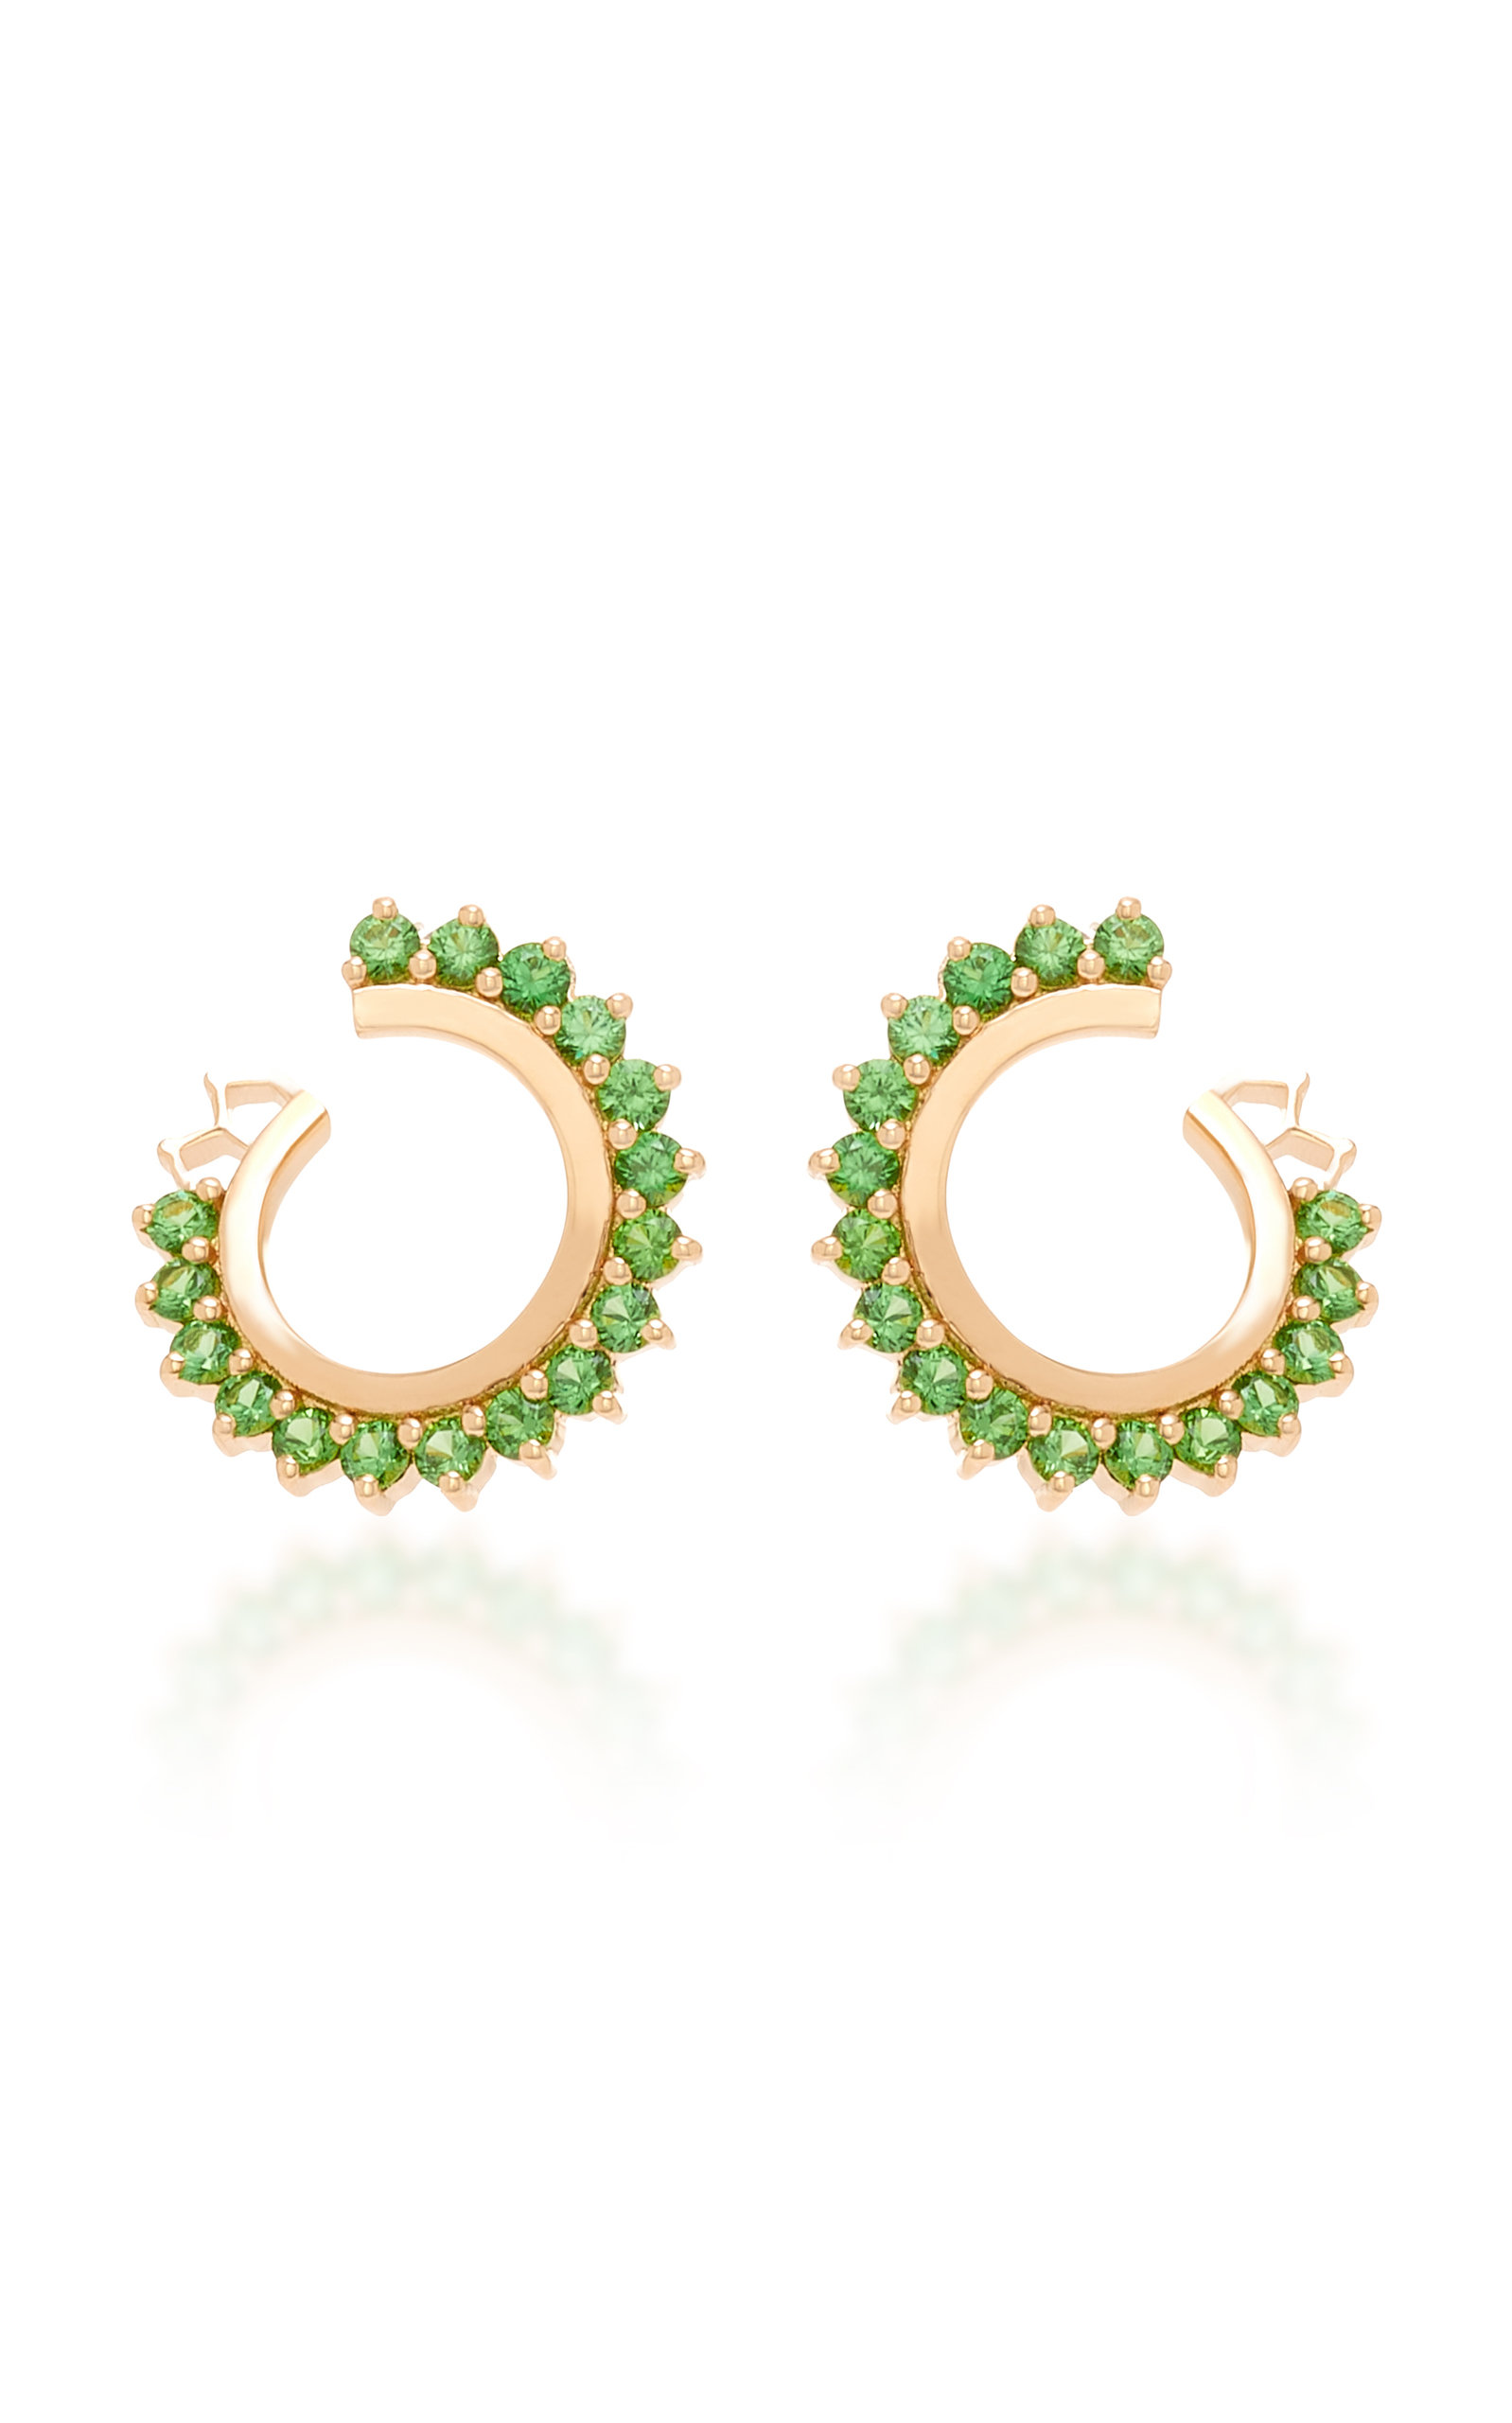 NOUVEL HERITAGE 18K ROSE GOLD TSAVORITE EARRINGS